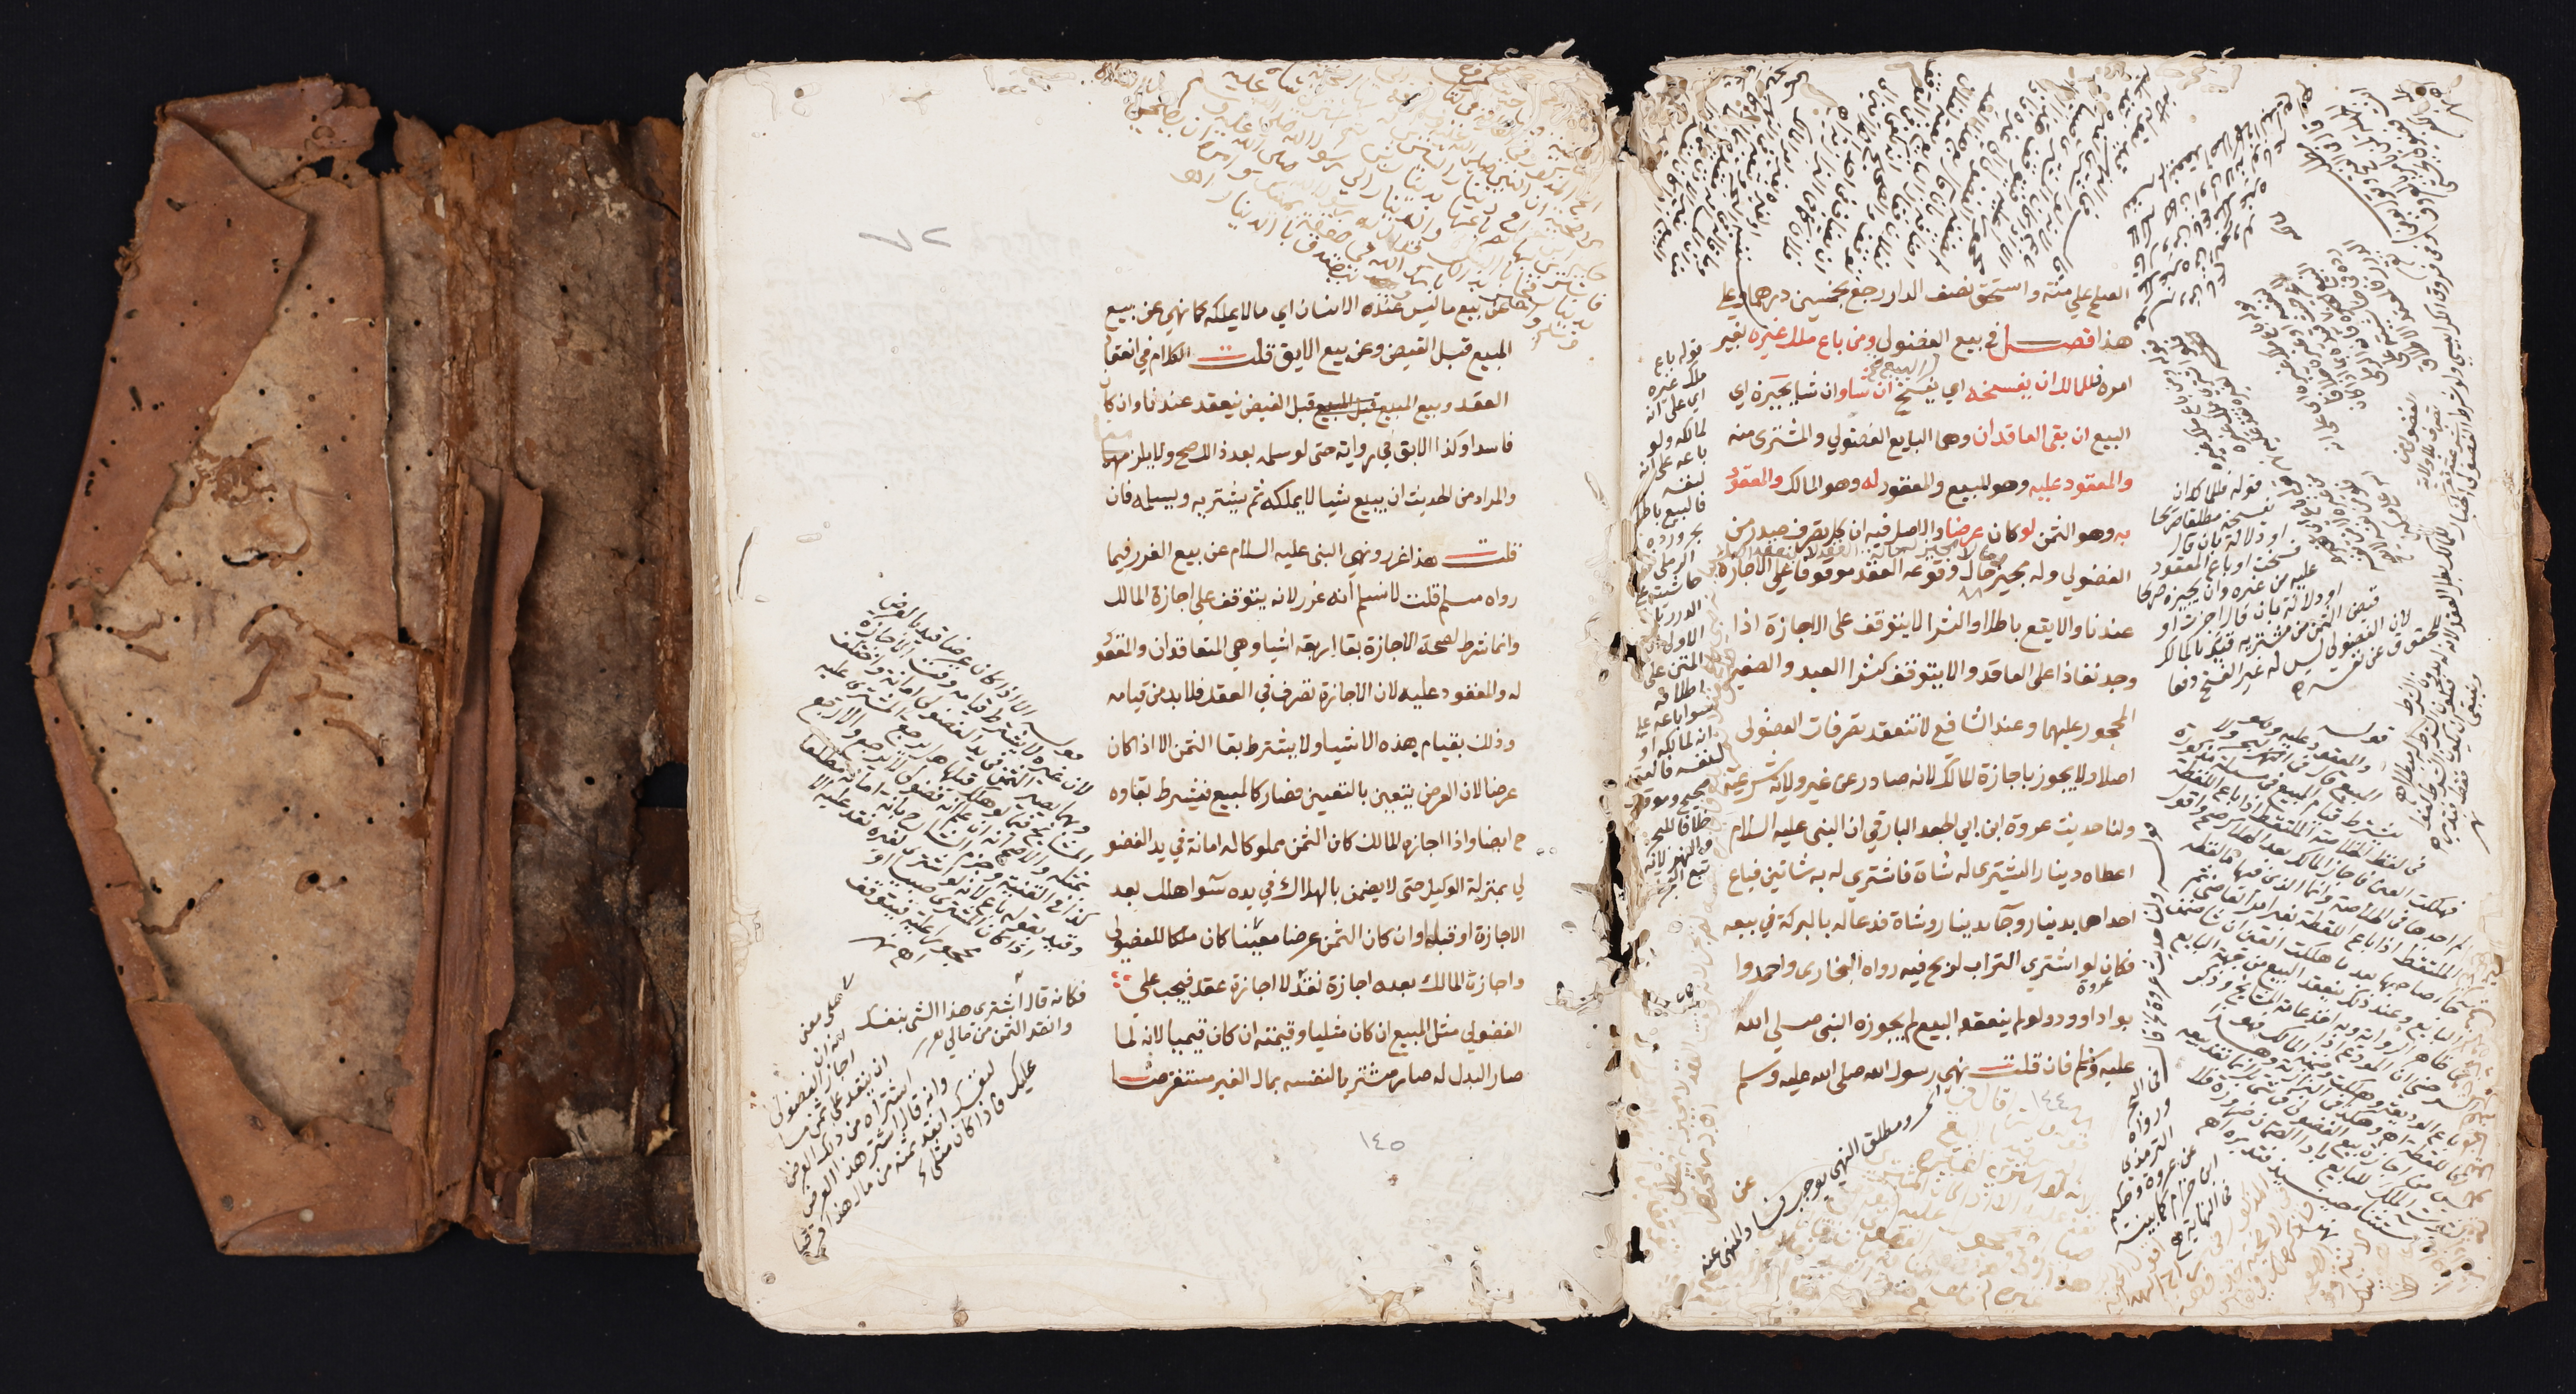 Treatise on Hanafi law from the Great Omari Mosque, Gaza City, Gaza (OMM 68)